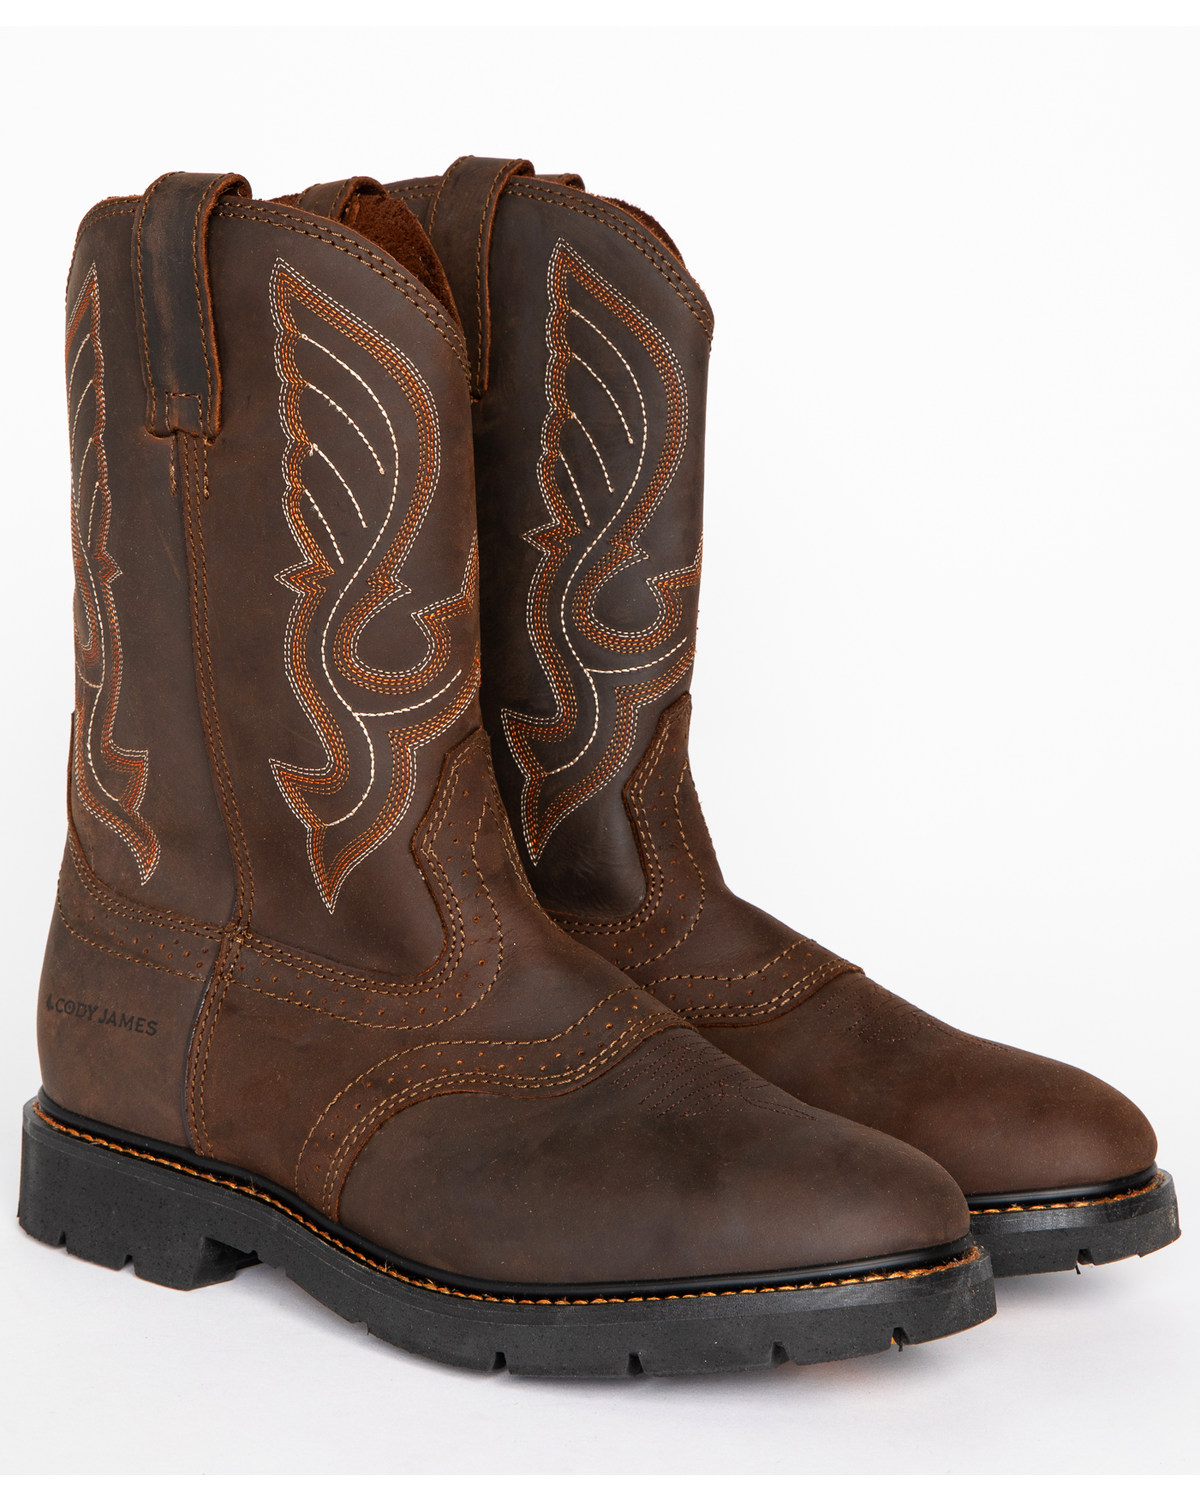 Cody James Men's Western Pull On Work Boots Round Toe